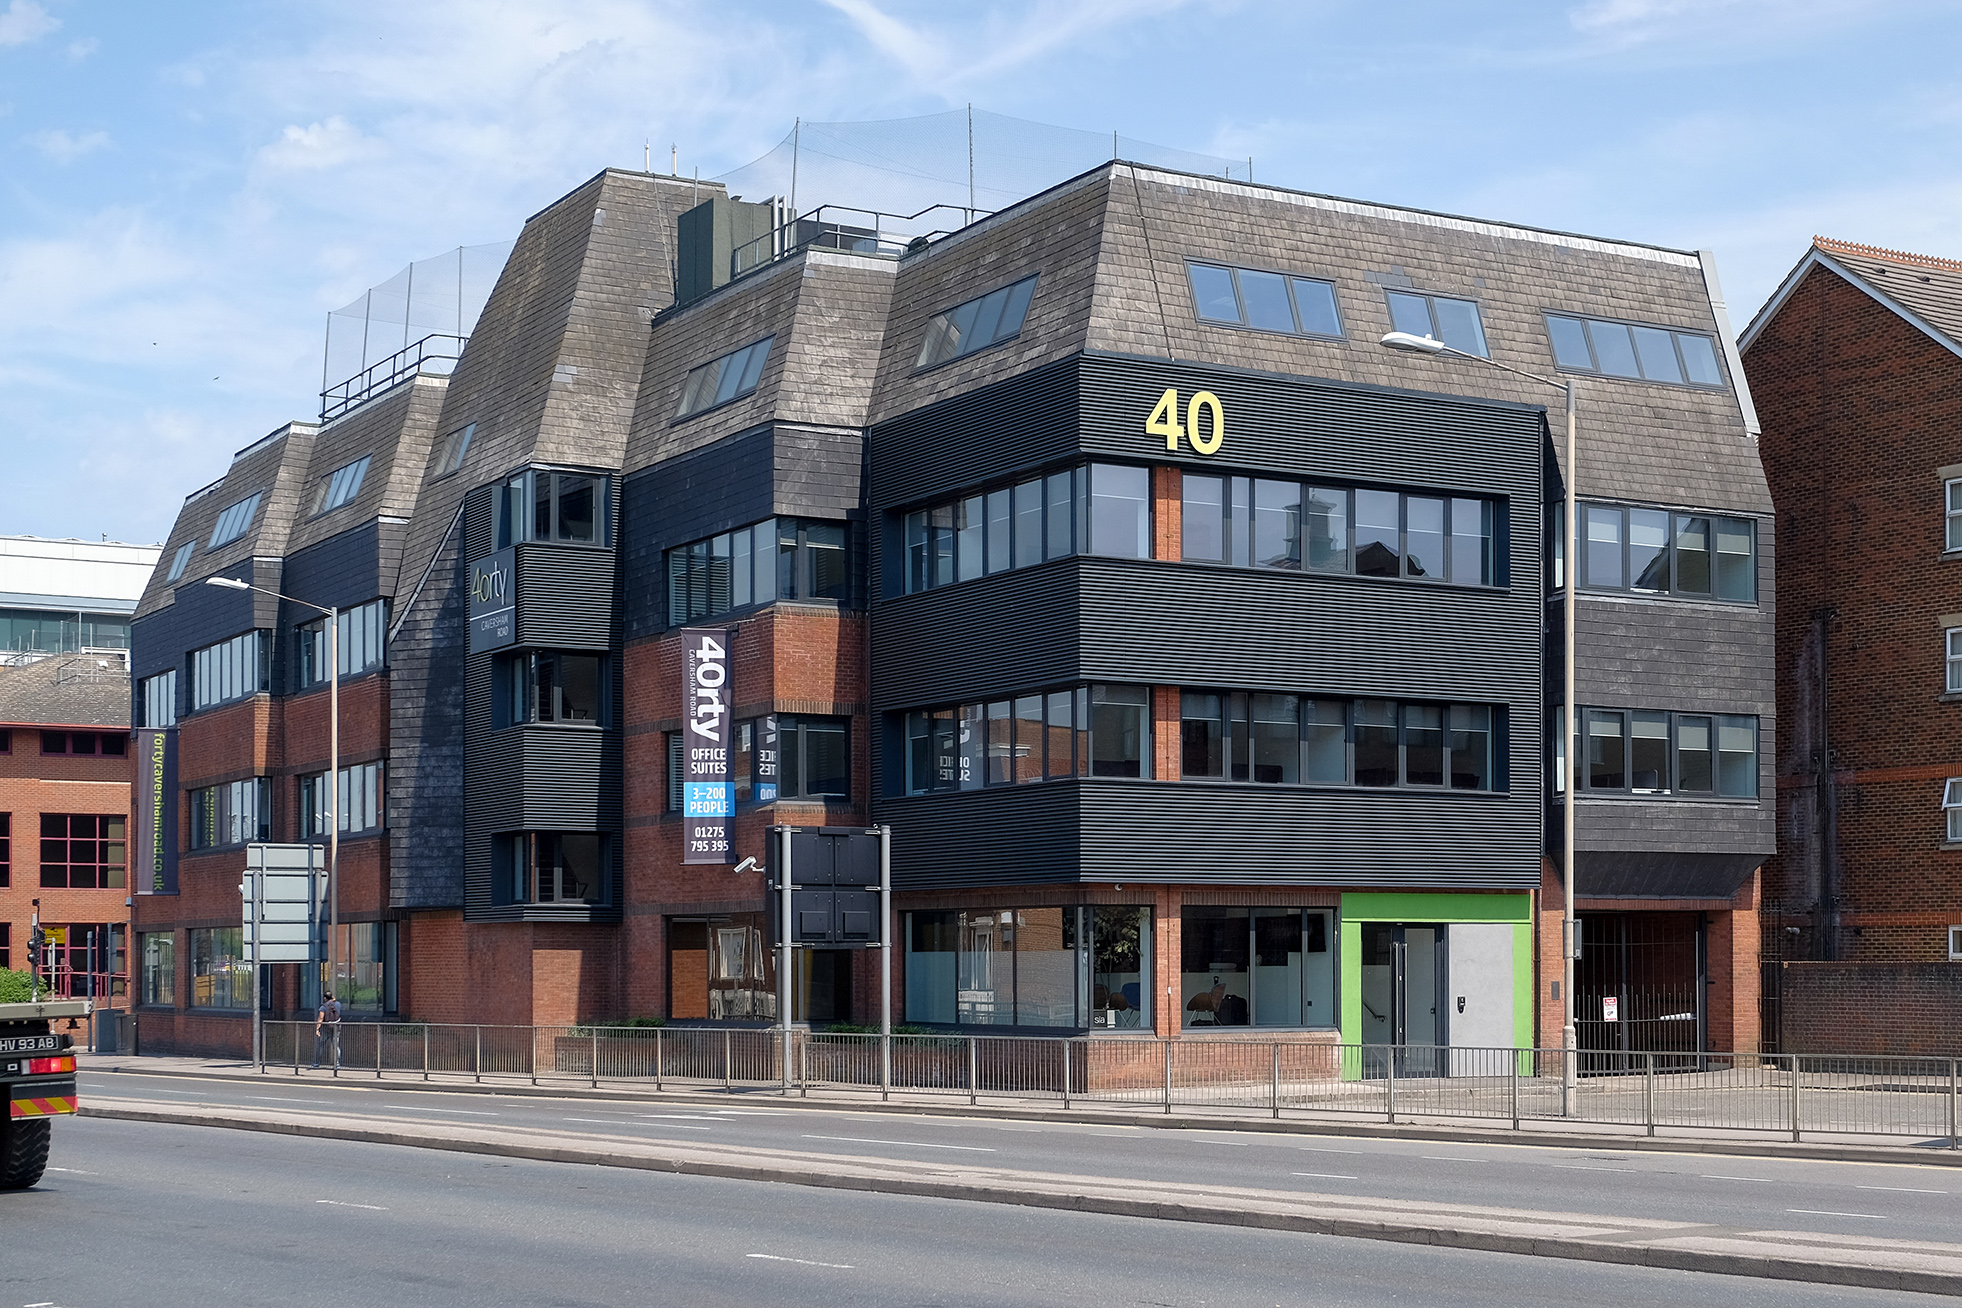 Chadwick Business Centres Limited - 40 Caversham Road, RG1 - Reading